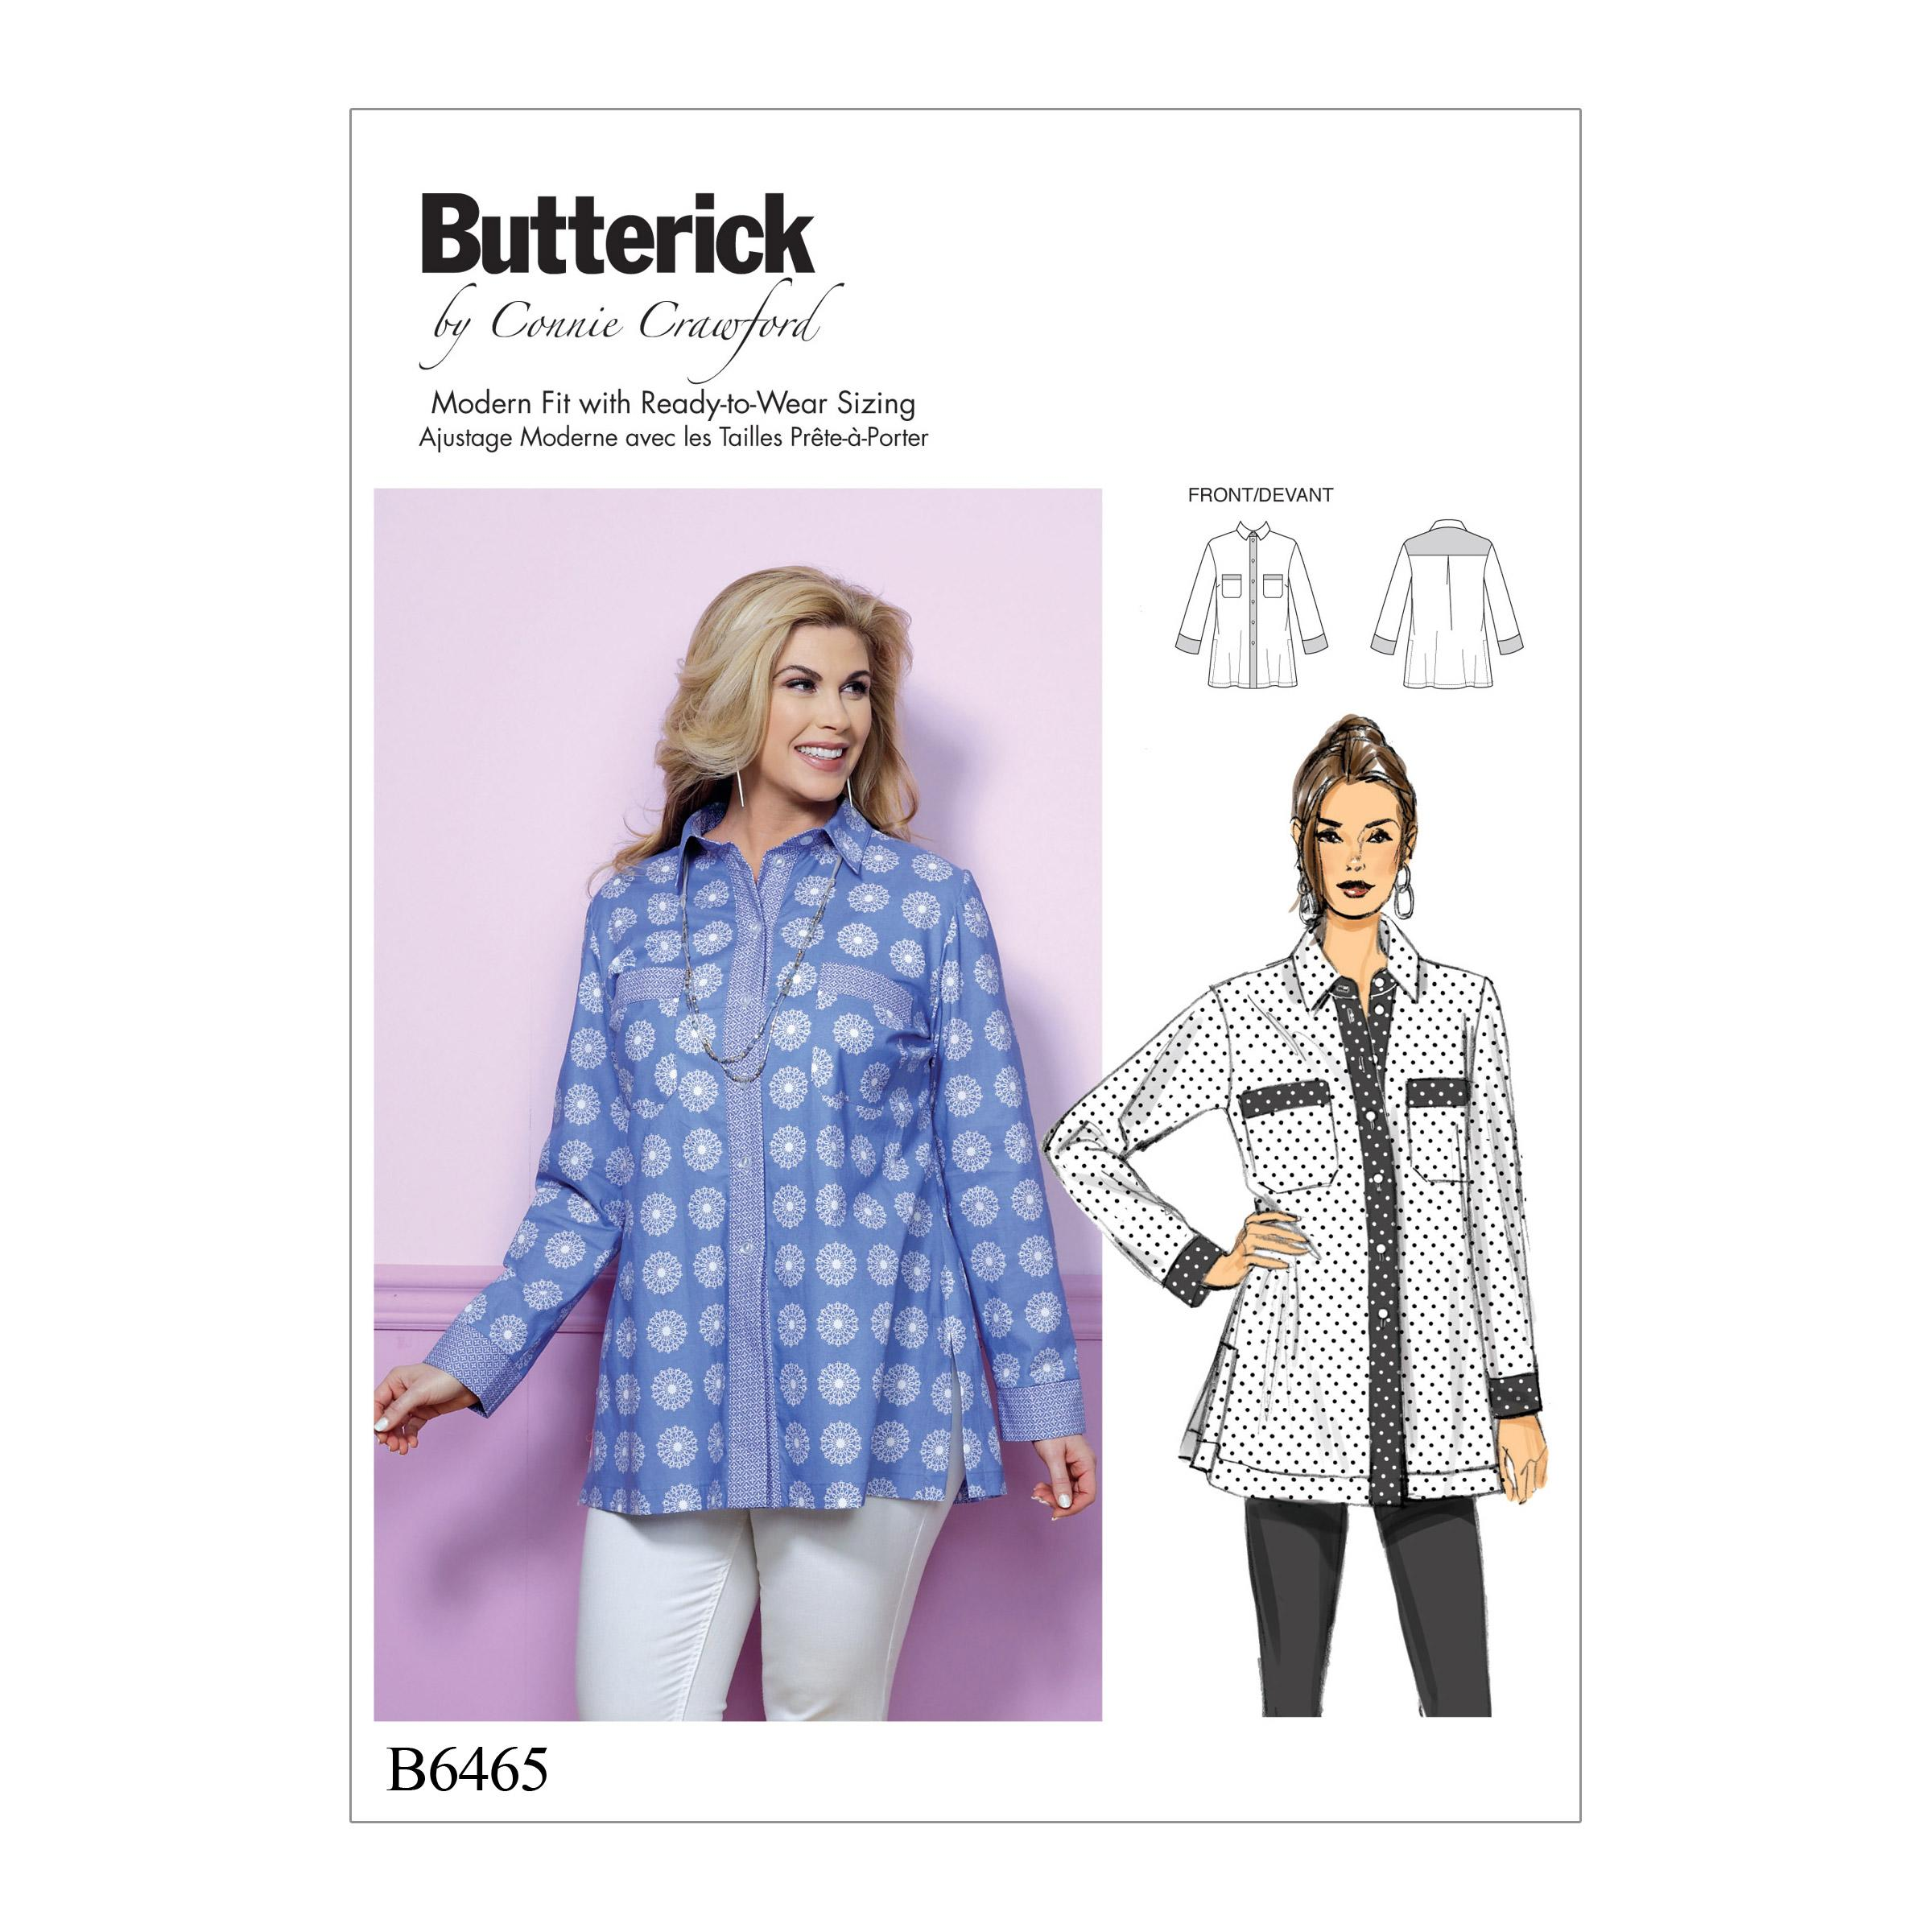 Butterick B6465 Misses'/Women's Button-Down Shirt with Side Slits and Bust Pockets